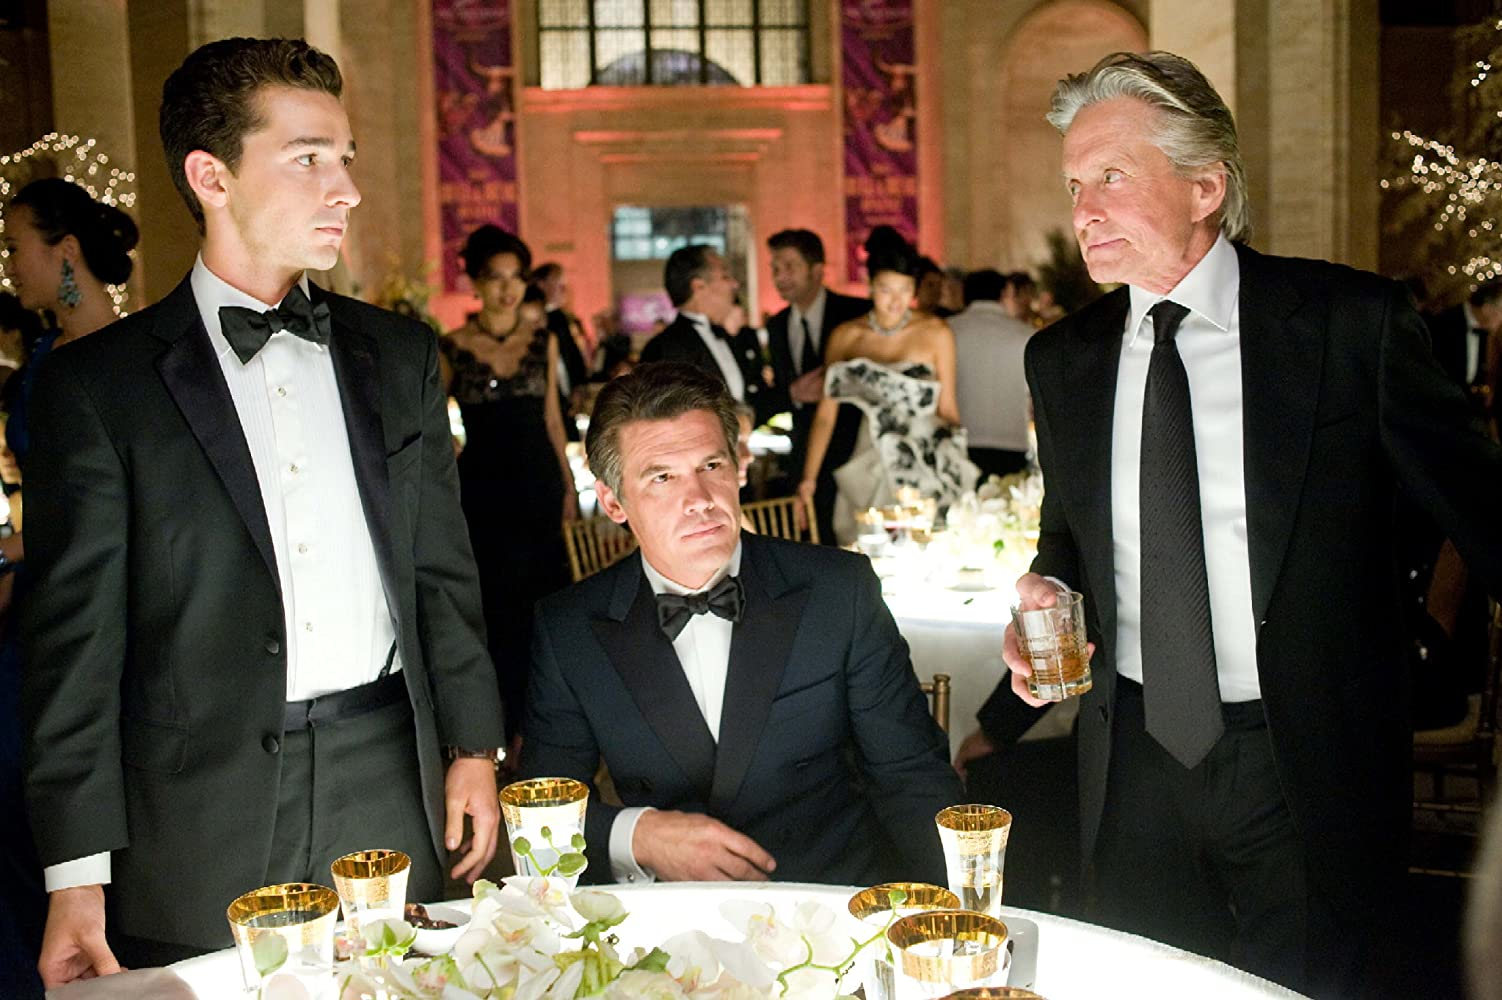 Michael Douglas, Josh Brolin, and Shia LaBeouf in Wall Street: Money Never Sleeps (2010)